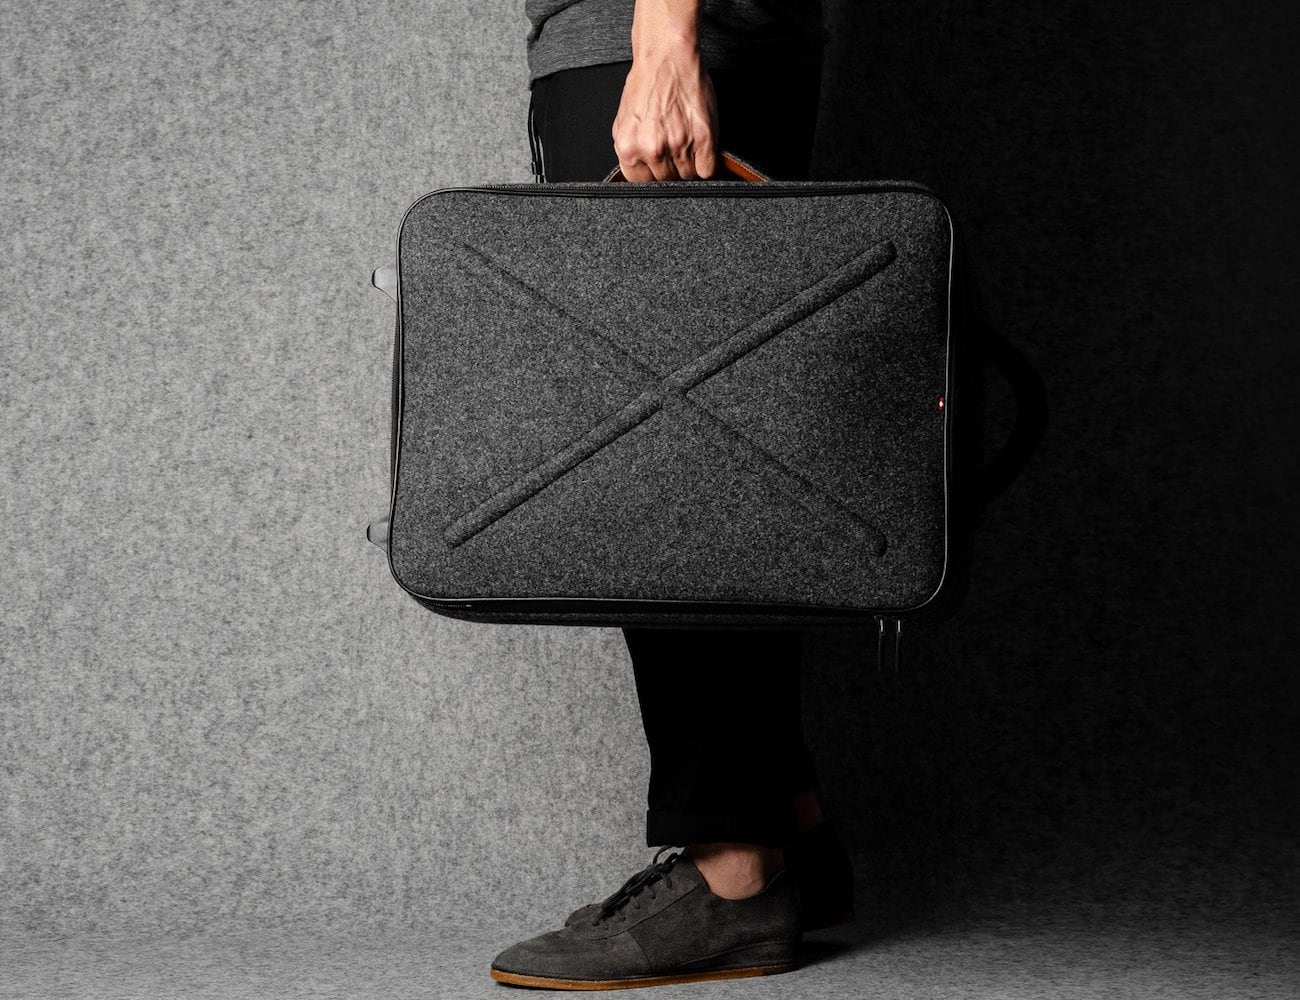 A person is holding the hardgraft Worldly Cabin Suitcase by its side handle.